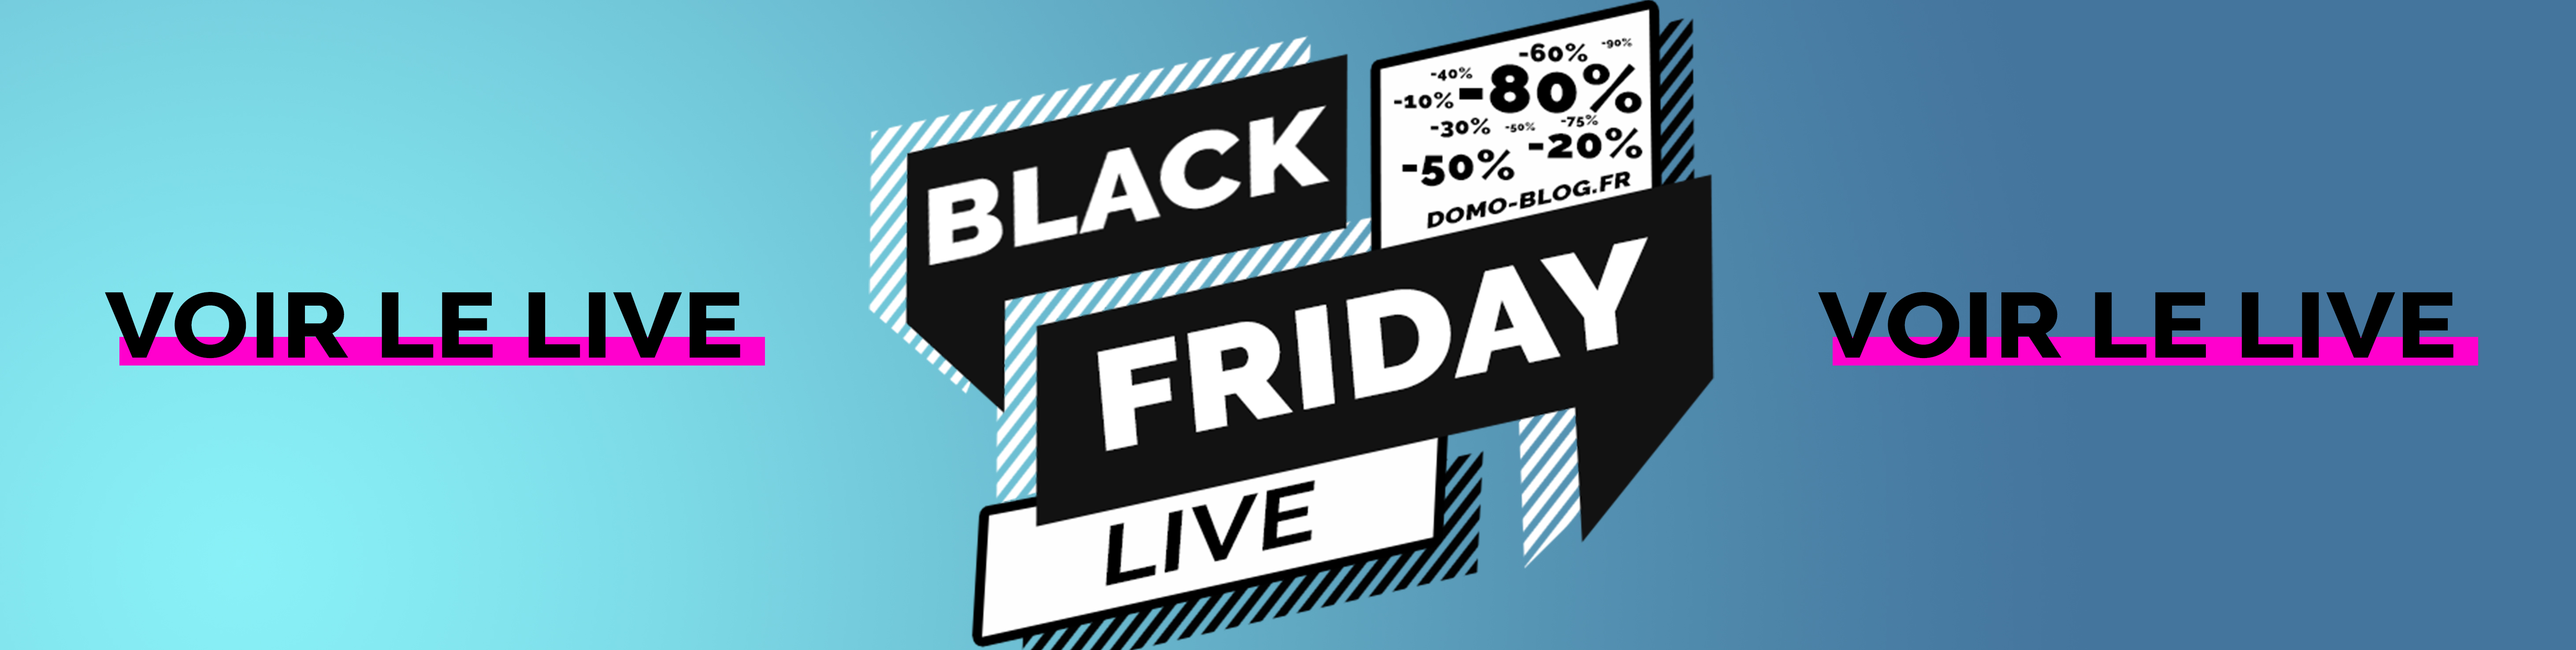 ban-black-friday-live